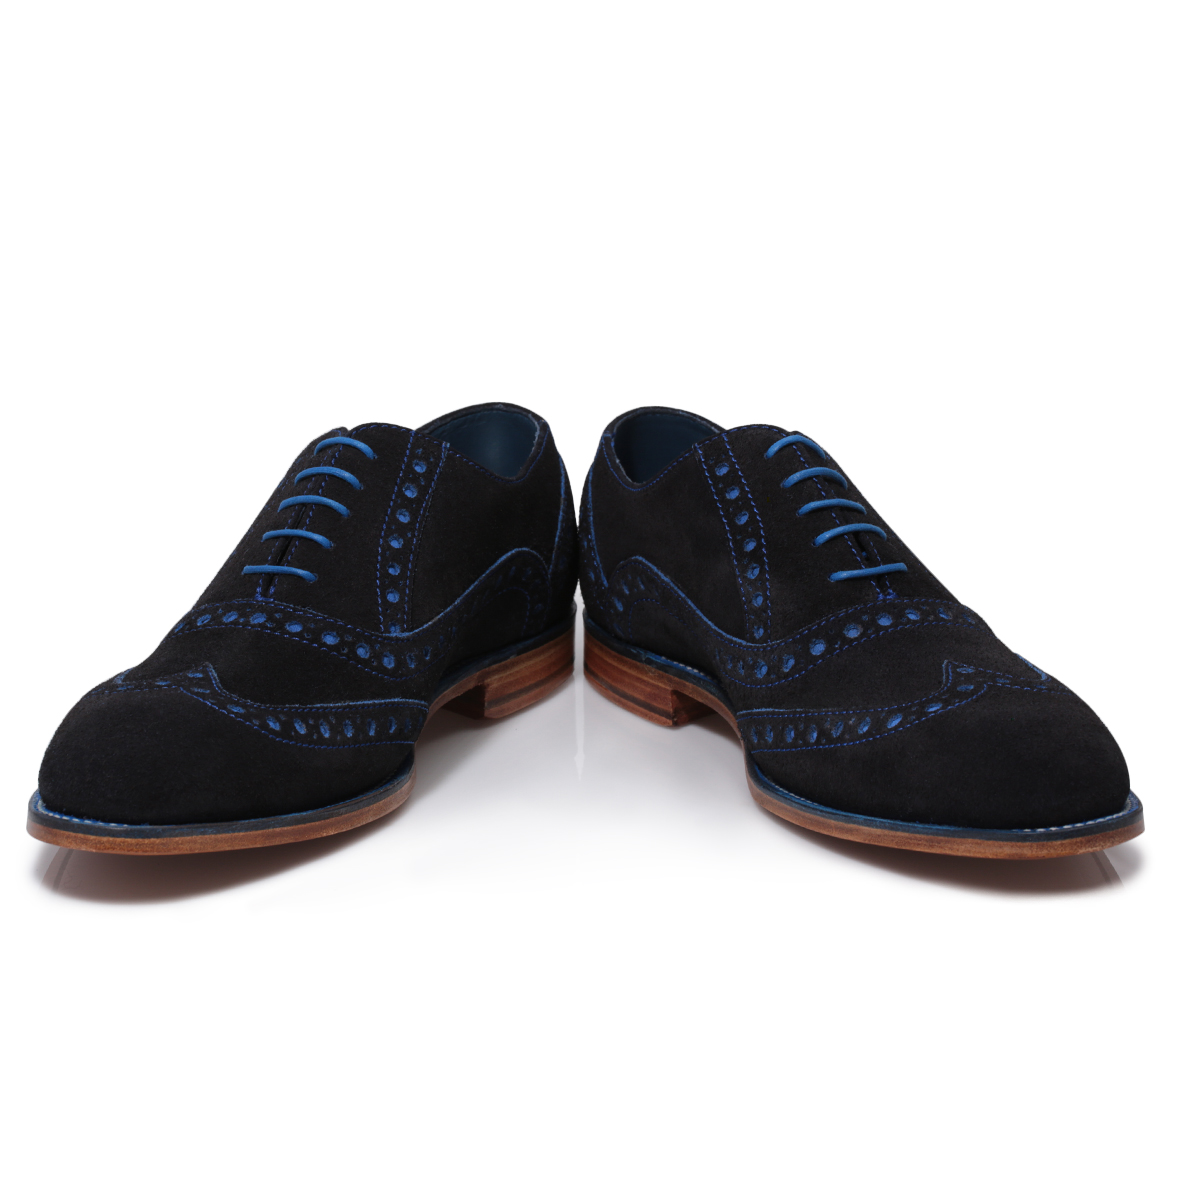 Free shipping BOTH ways on mens navy shoes, from our vast selection of styles. Fast delivery, and 24/7/ real-person service with a smile. Click or call